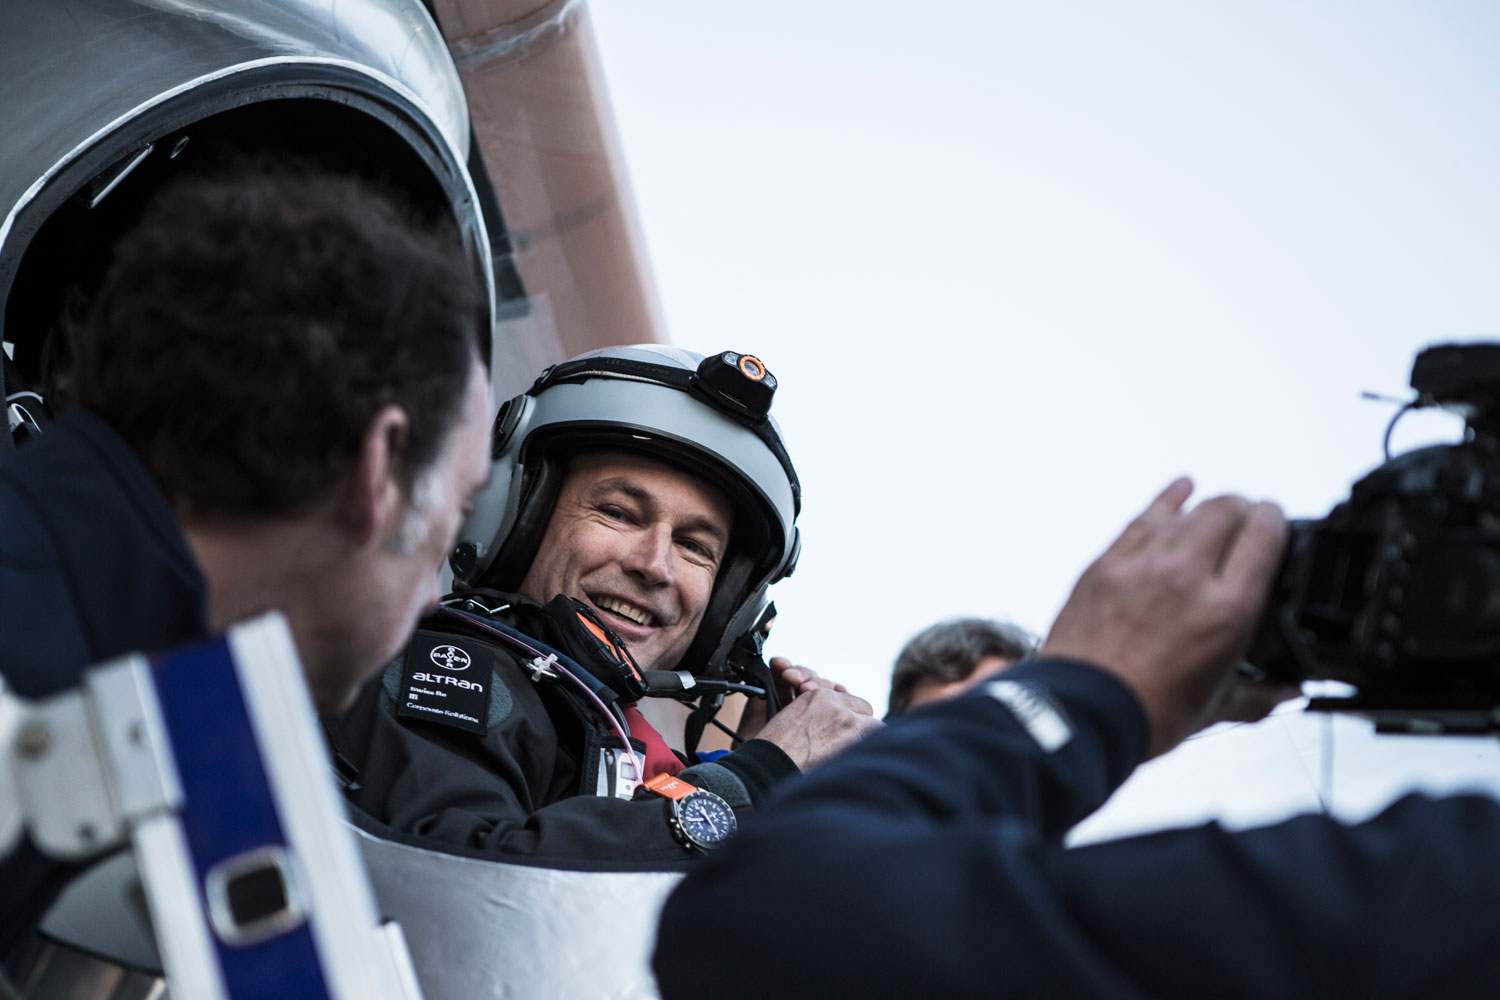 The pilot Bertrand Piccard, initiator and President of the Solar Impulse project, will be flying over the San Francisco Bay area and pass over the Golden Gate Bridge.